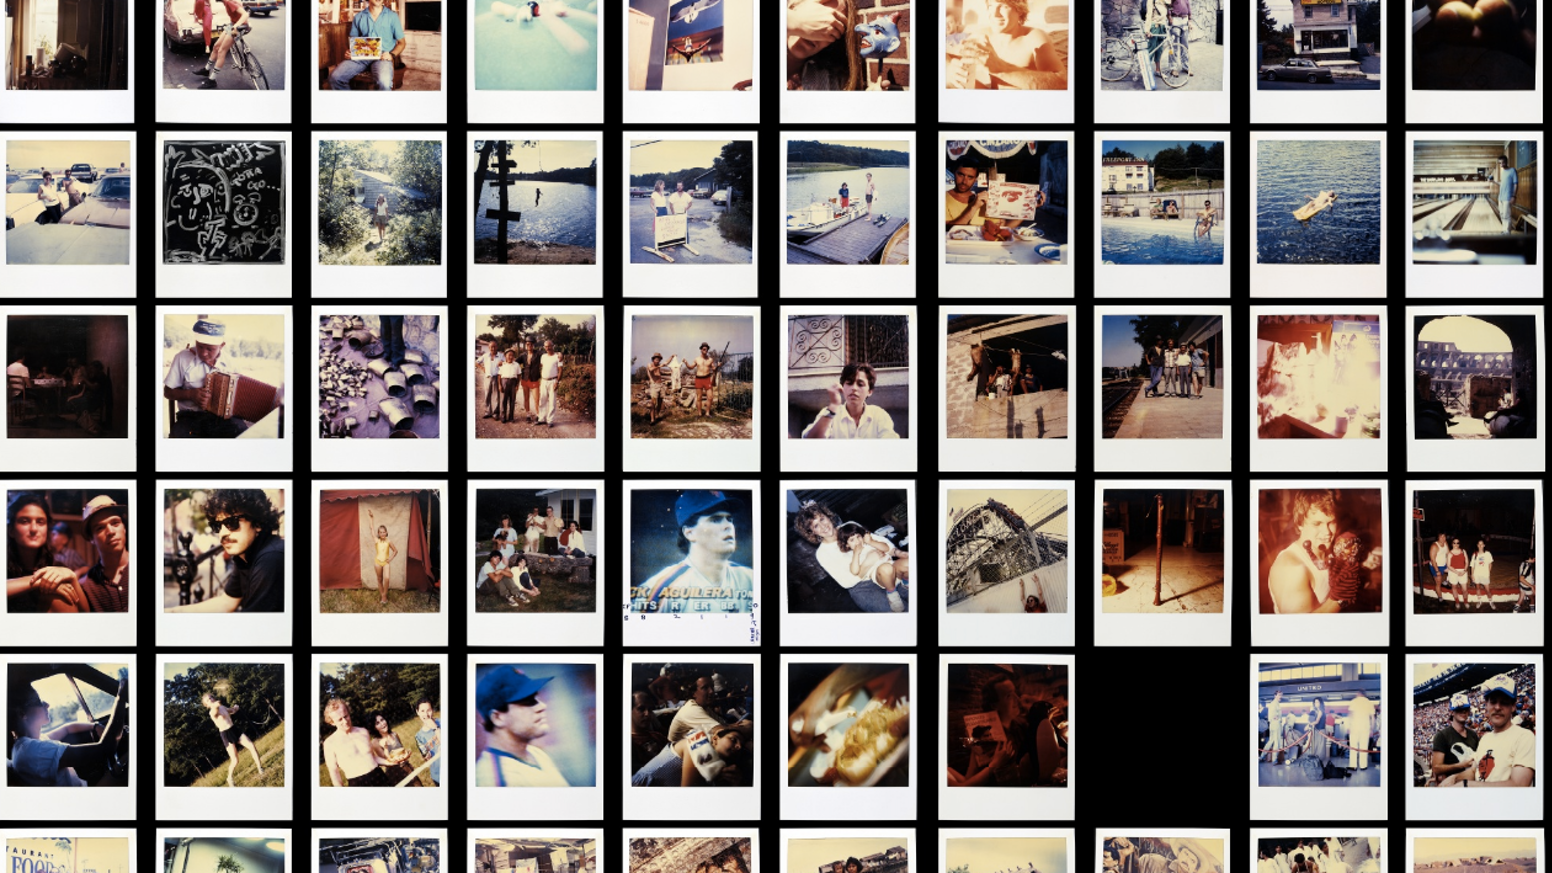 Jamie Livingston took one Polaroid every day for 18 years until he died on his 41st birthday. We made a book of them for his 61st. This project has been successfully funded and books are available at Amazon or by clicking this button